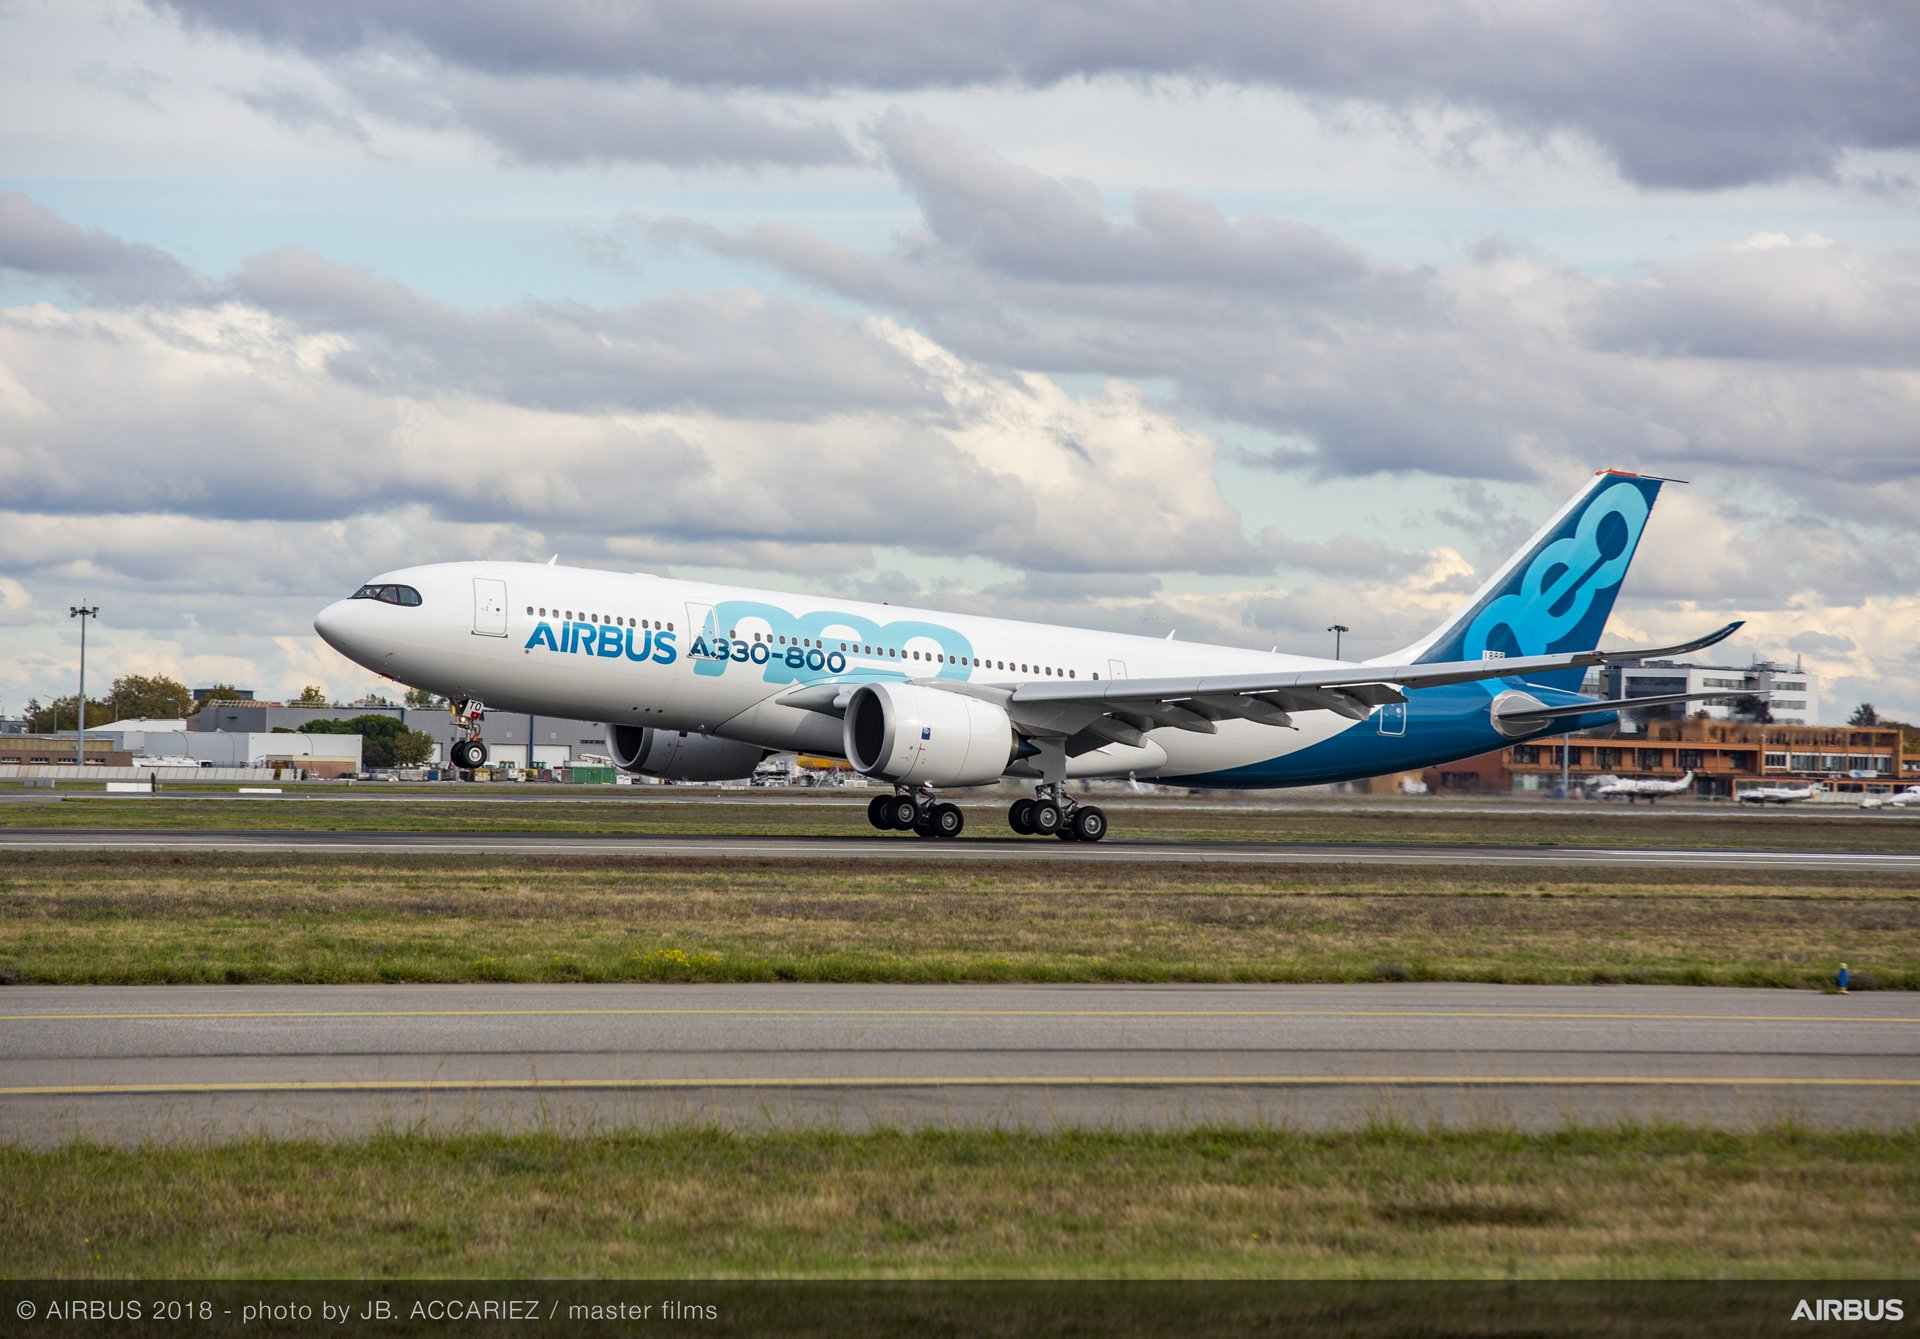 The A330-800 lands at Toulouse-Blagnac Airport in southwestern France, at 2:35 p.m. local time, after a successful first flight